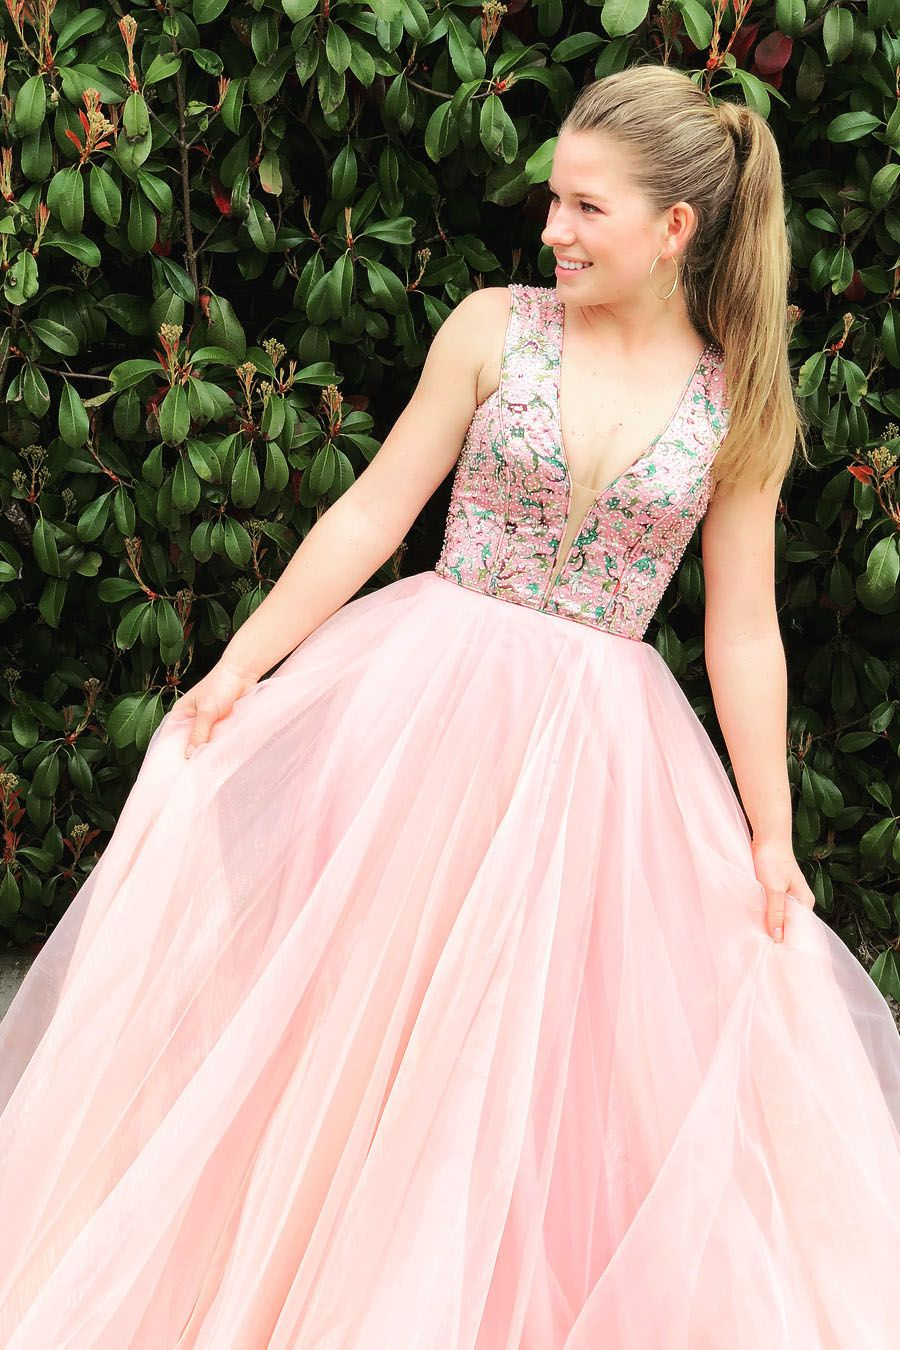 Unique v neck pink tulle long prom dress cuteedgy outfits